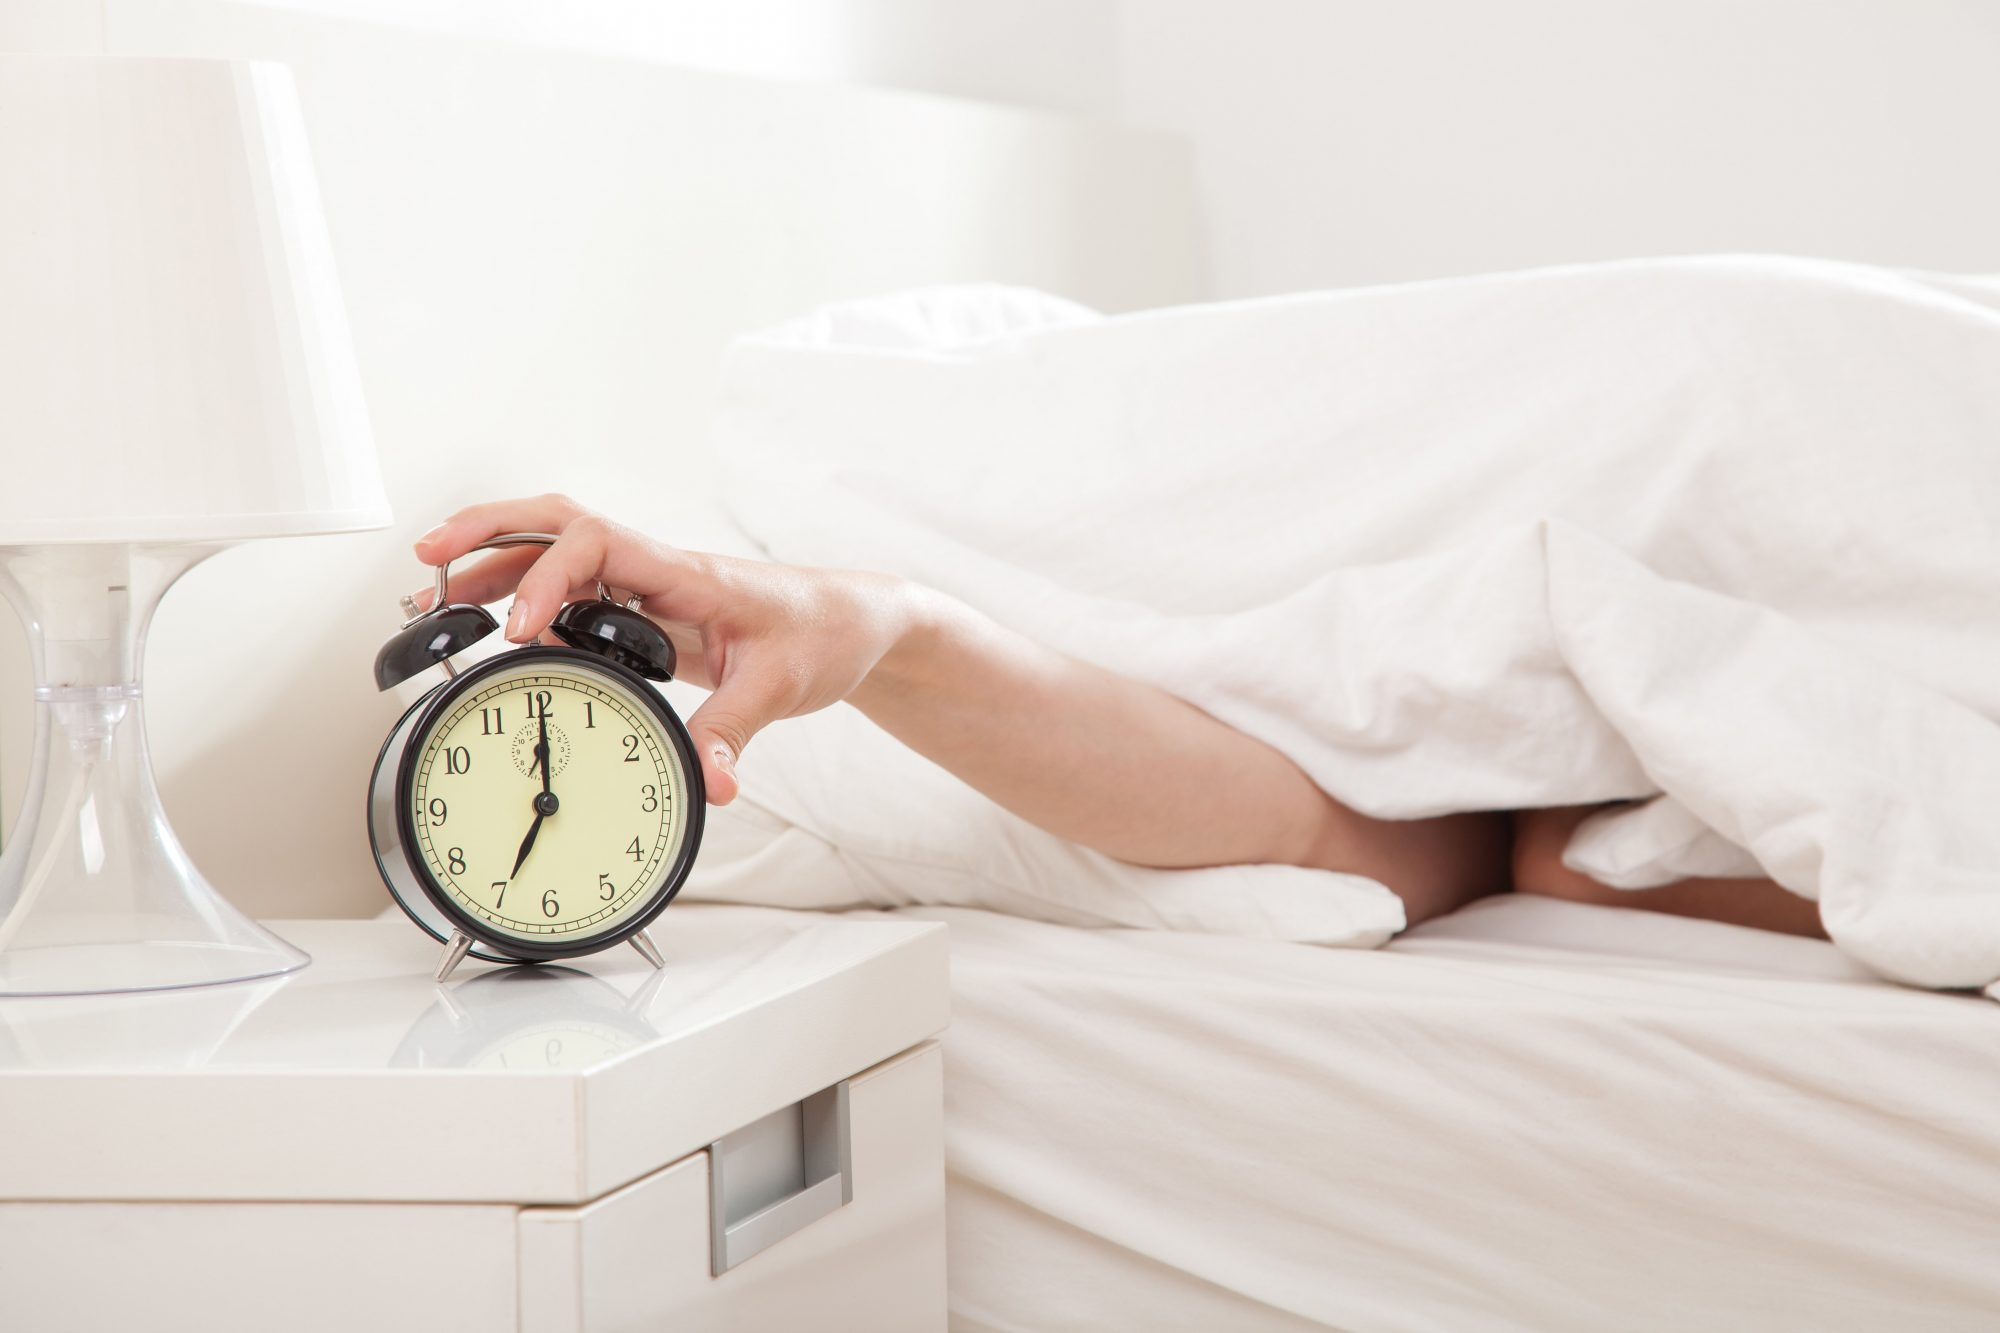 3 Secrets to Having a Better Morning